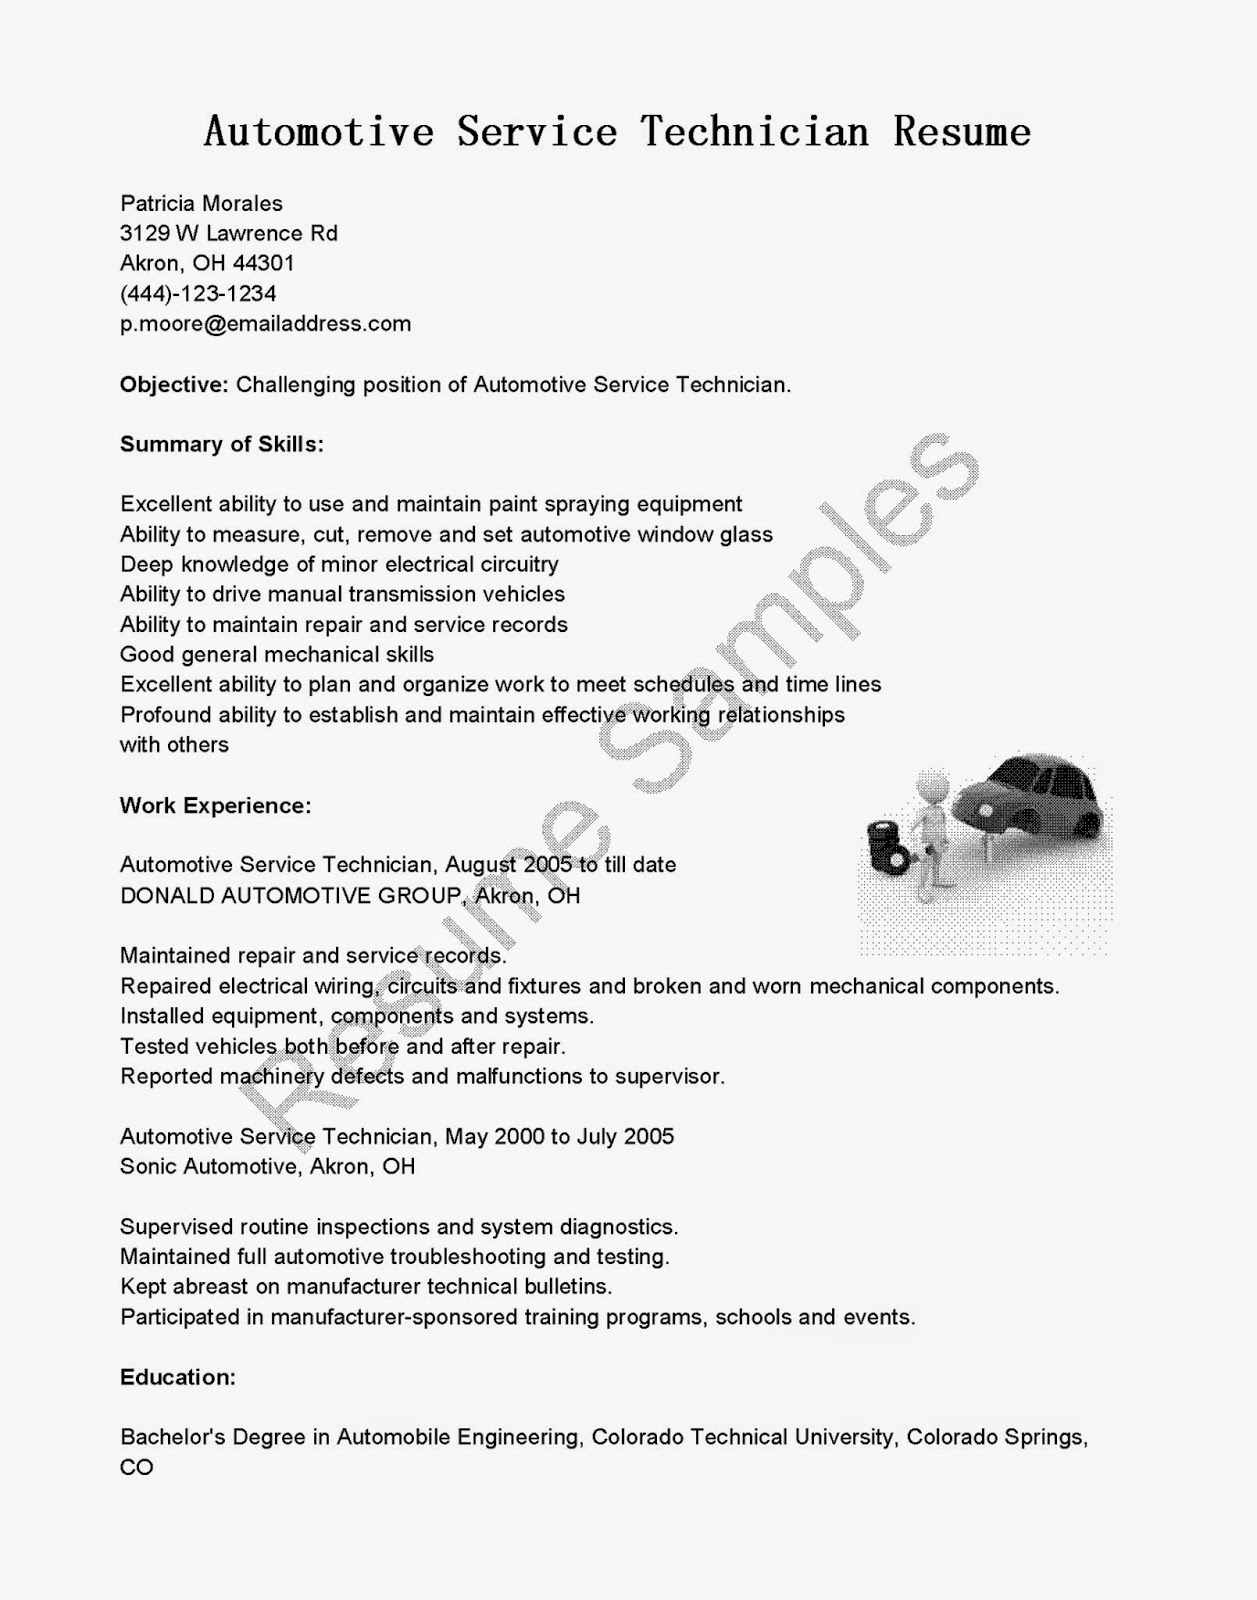 resume samples automotive service technician resume sample. Black Bedroom Furniture Sets. Home Design Ideas